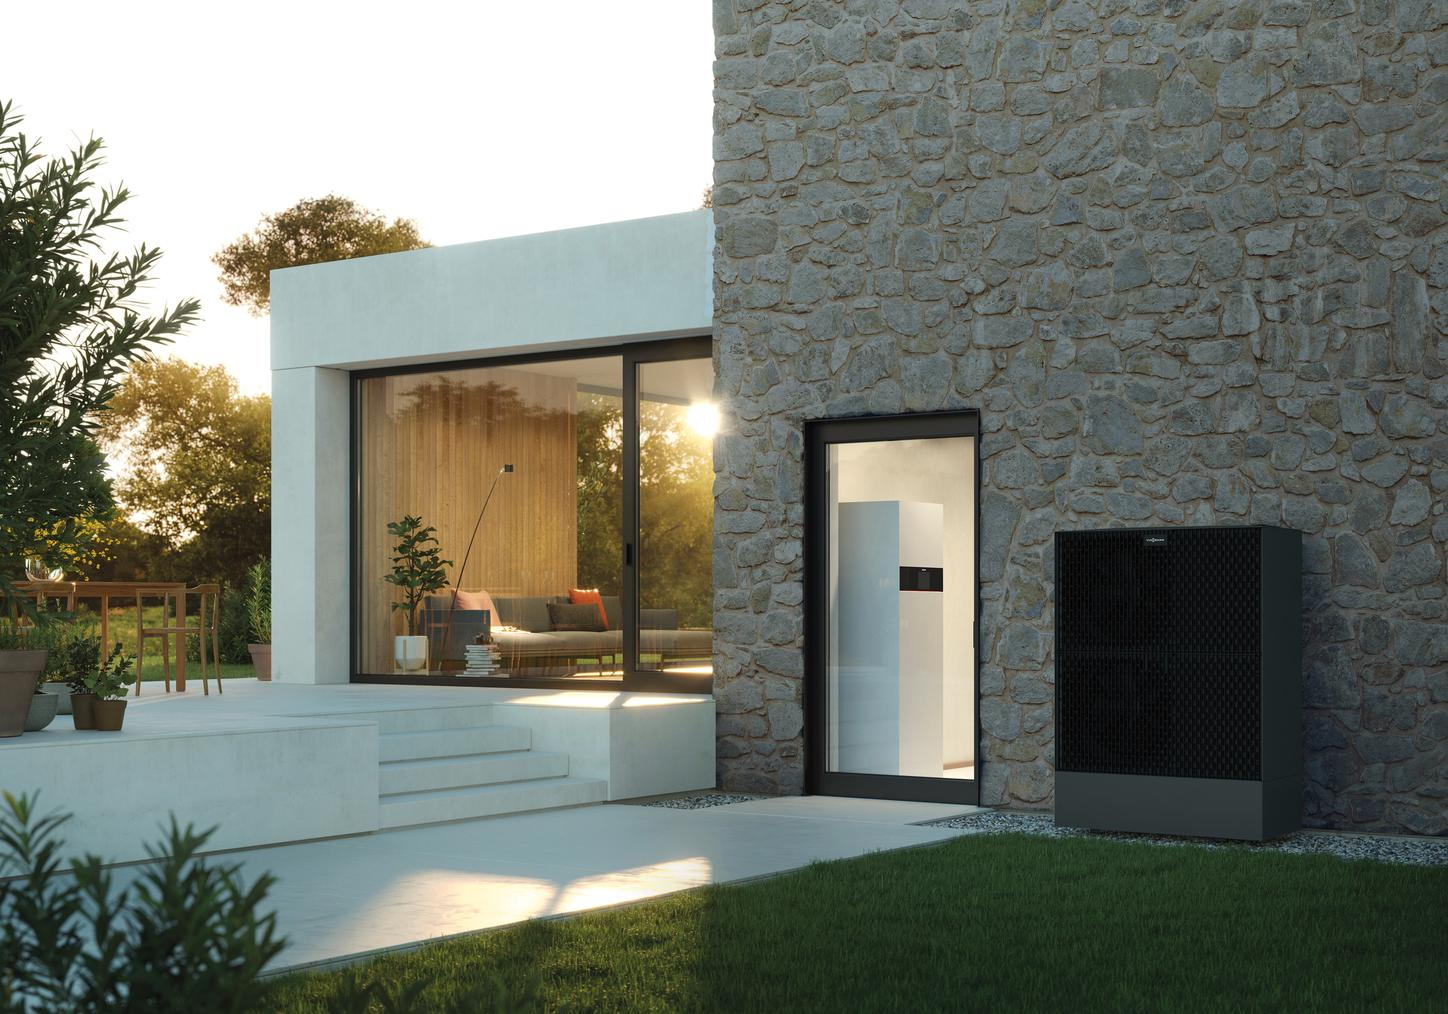 The image shows the Vitocal 252-A heat pump from Viessmann.